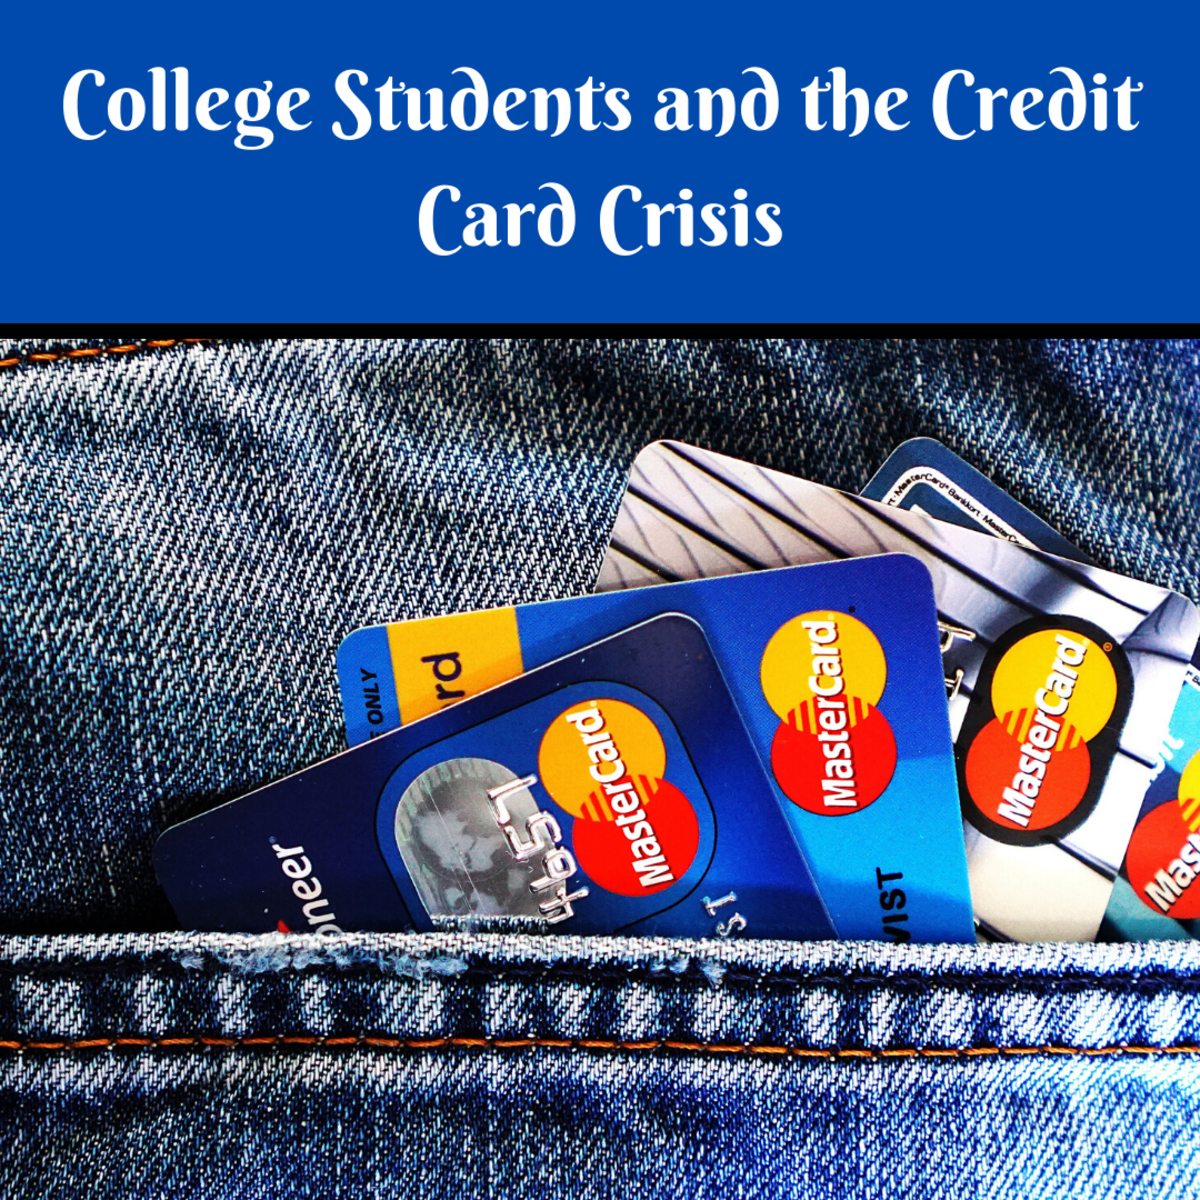 Read on to learn how credit cards are contributing to hardships for college students.